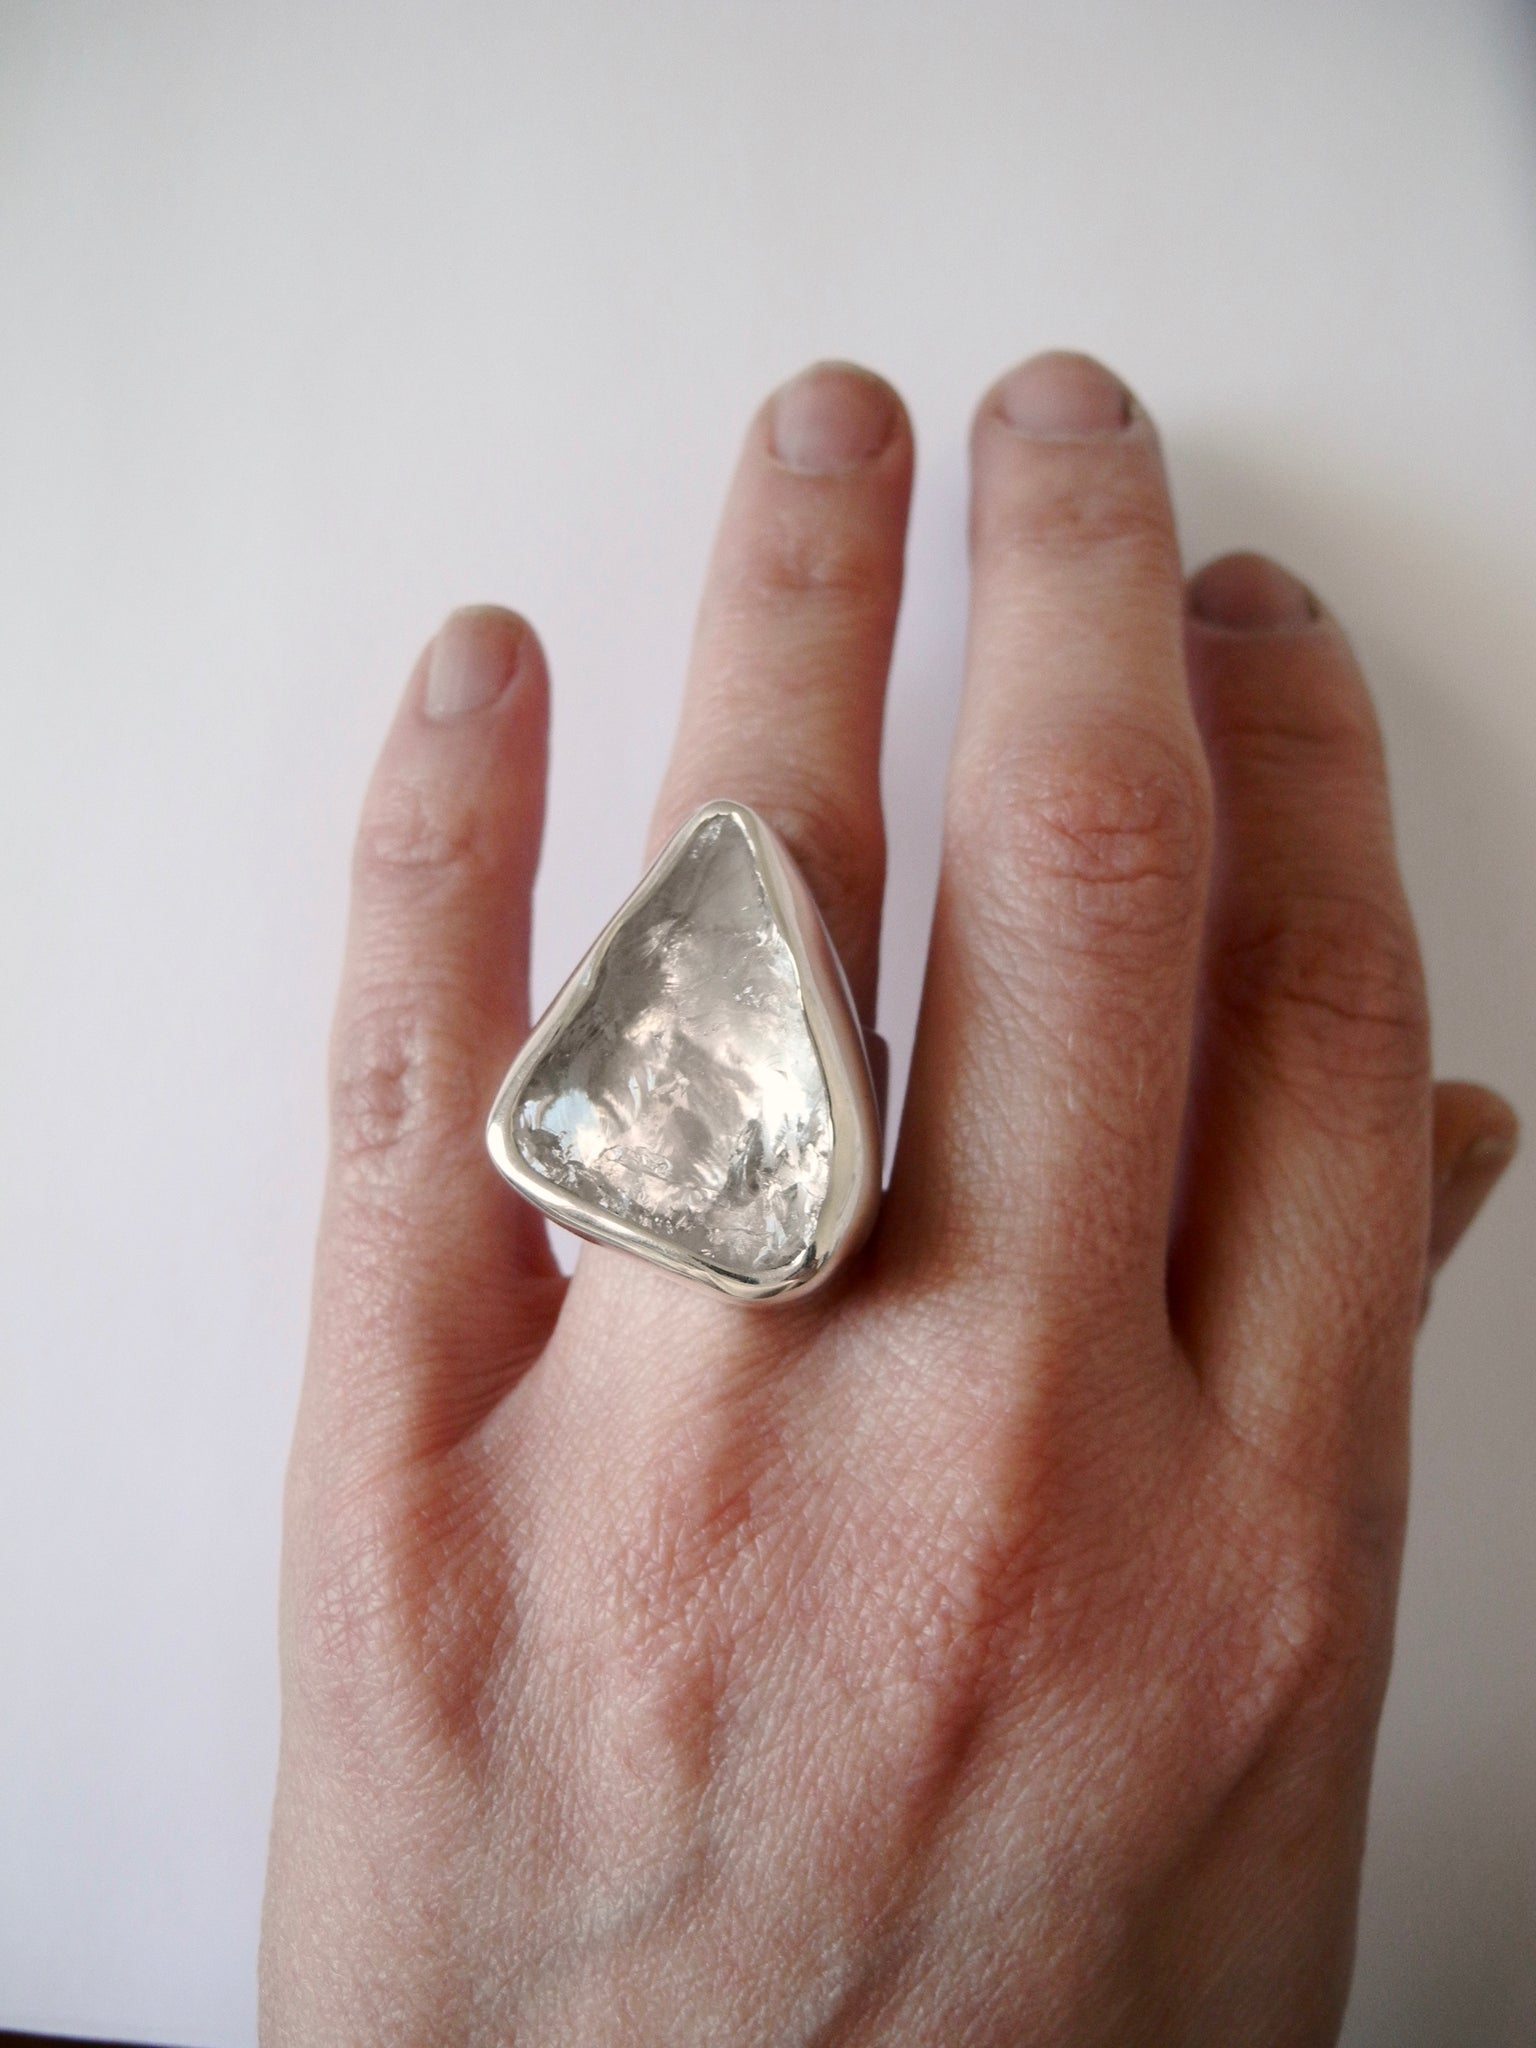 see the hidden quartz ring